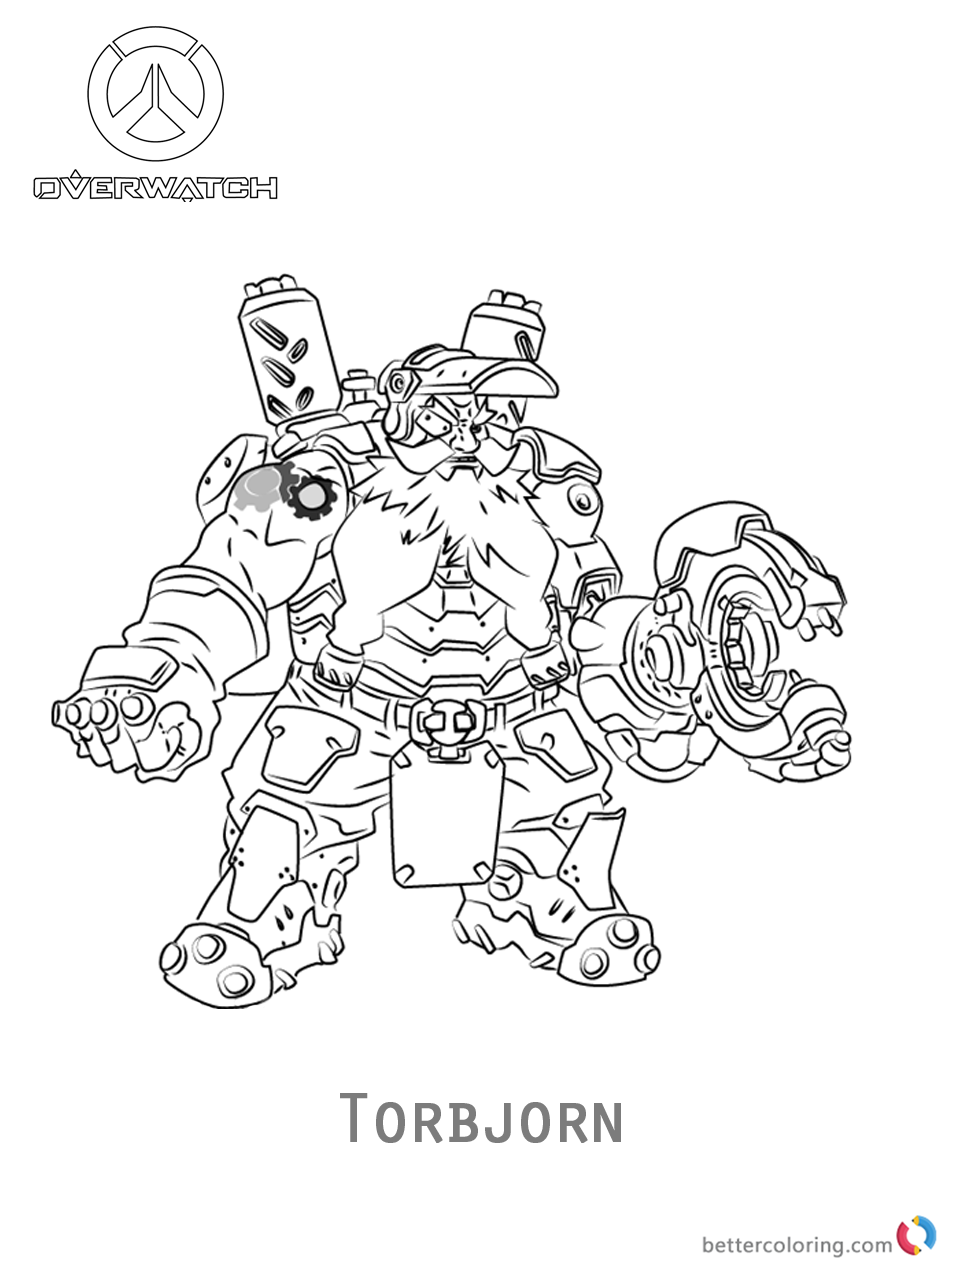 Torbjorn from Overwatch Coloring